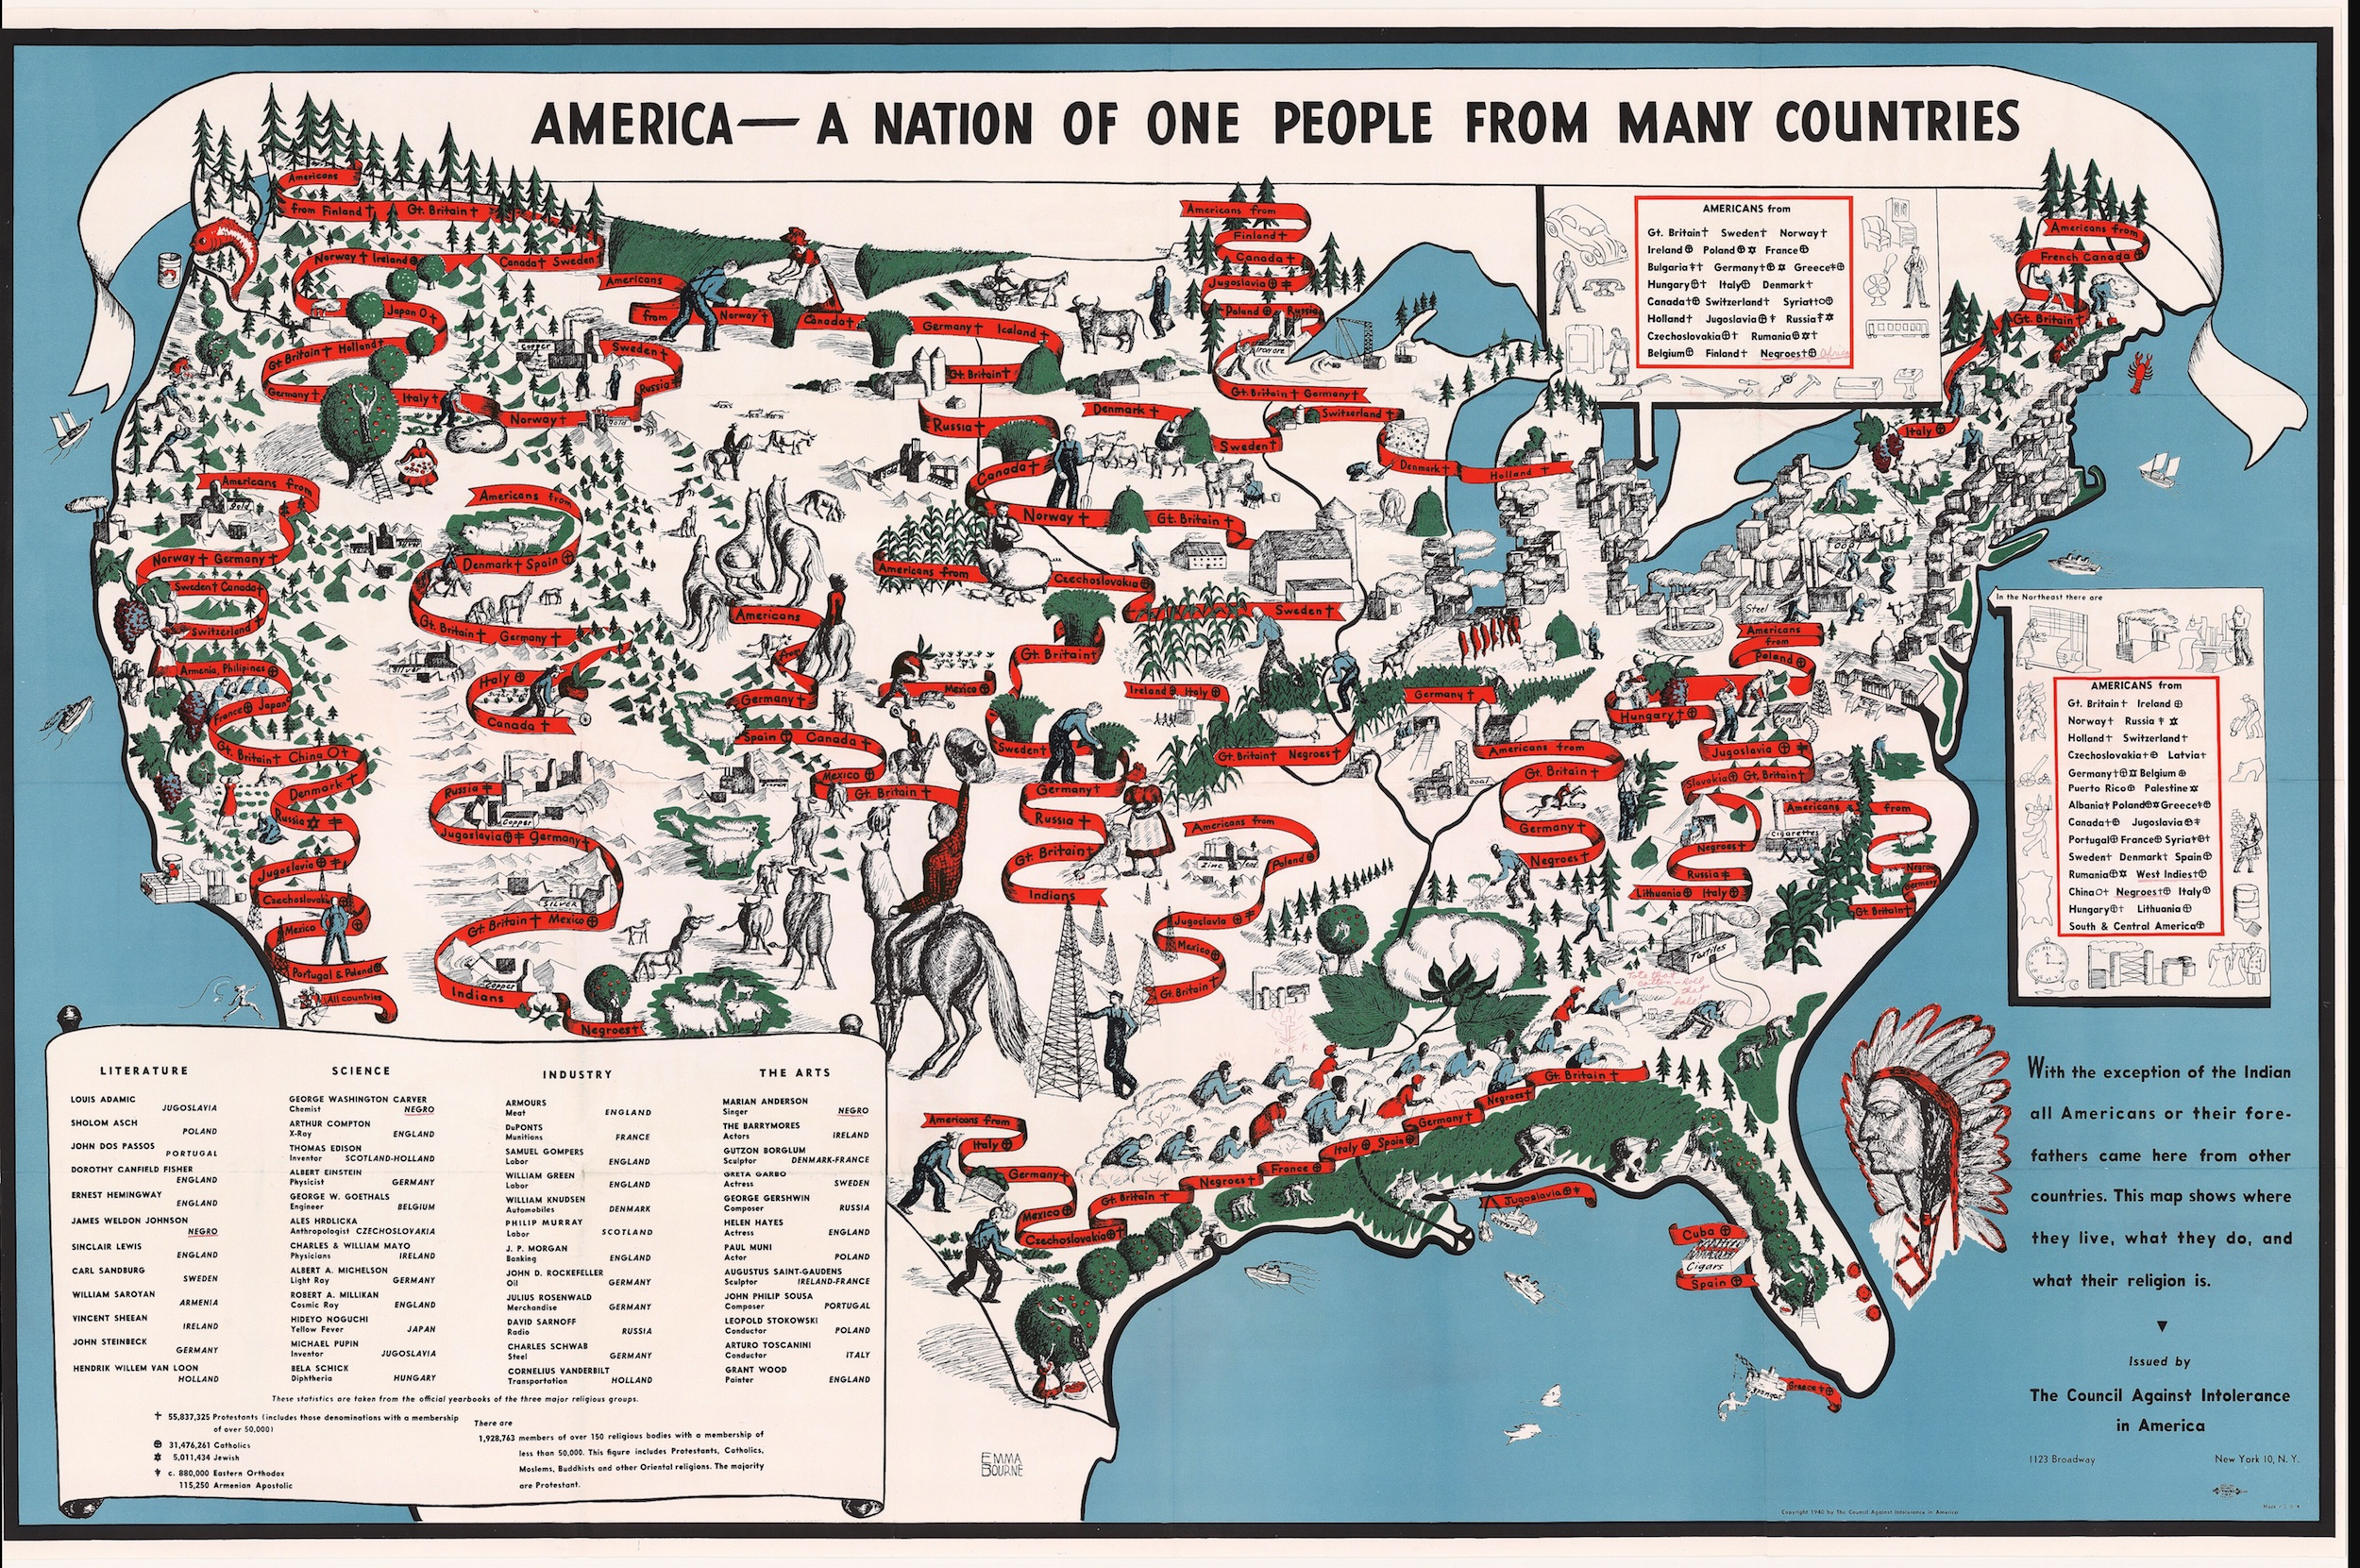 Diversity map 1940 map of American ethnic groups owned by Langston